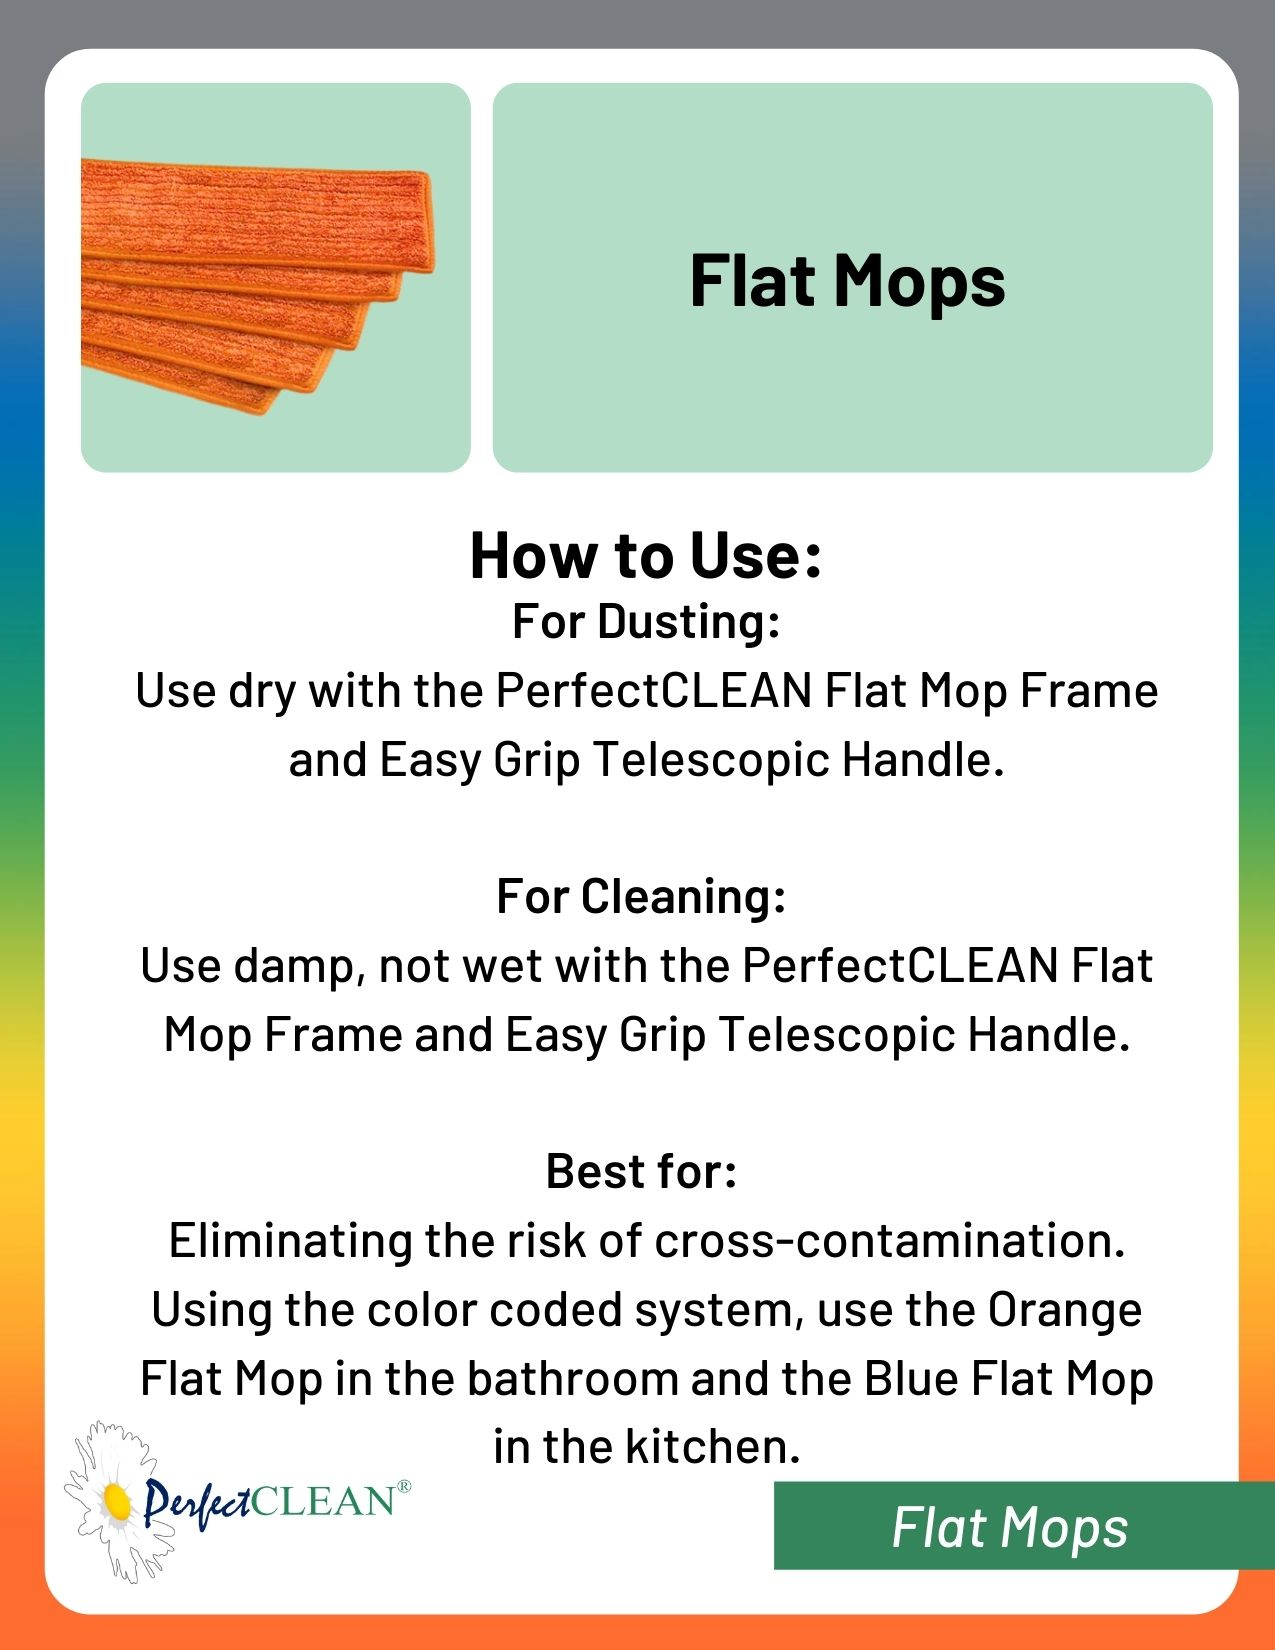 Flat Mops product card image